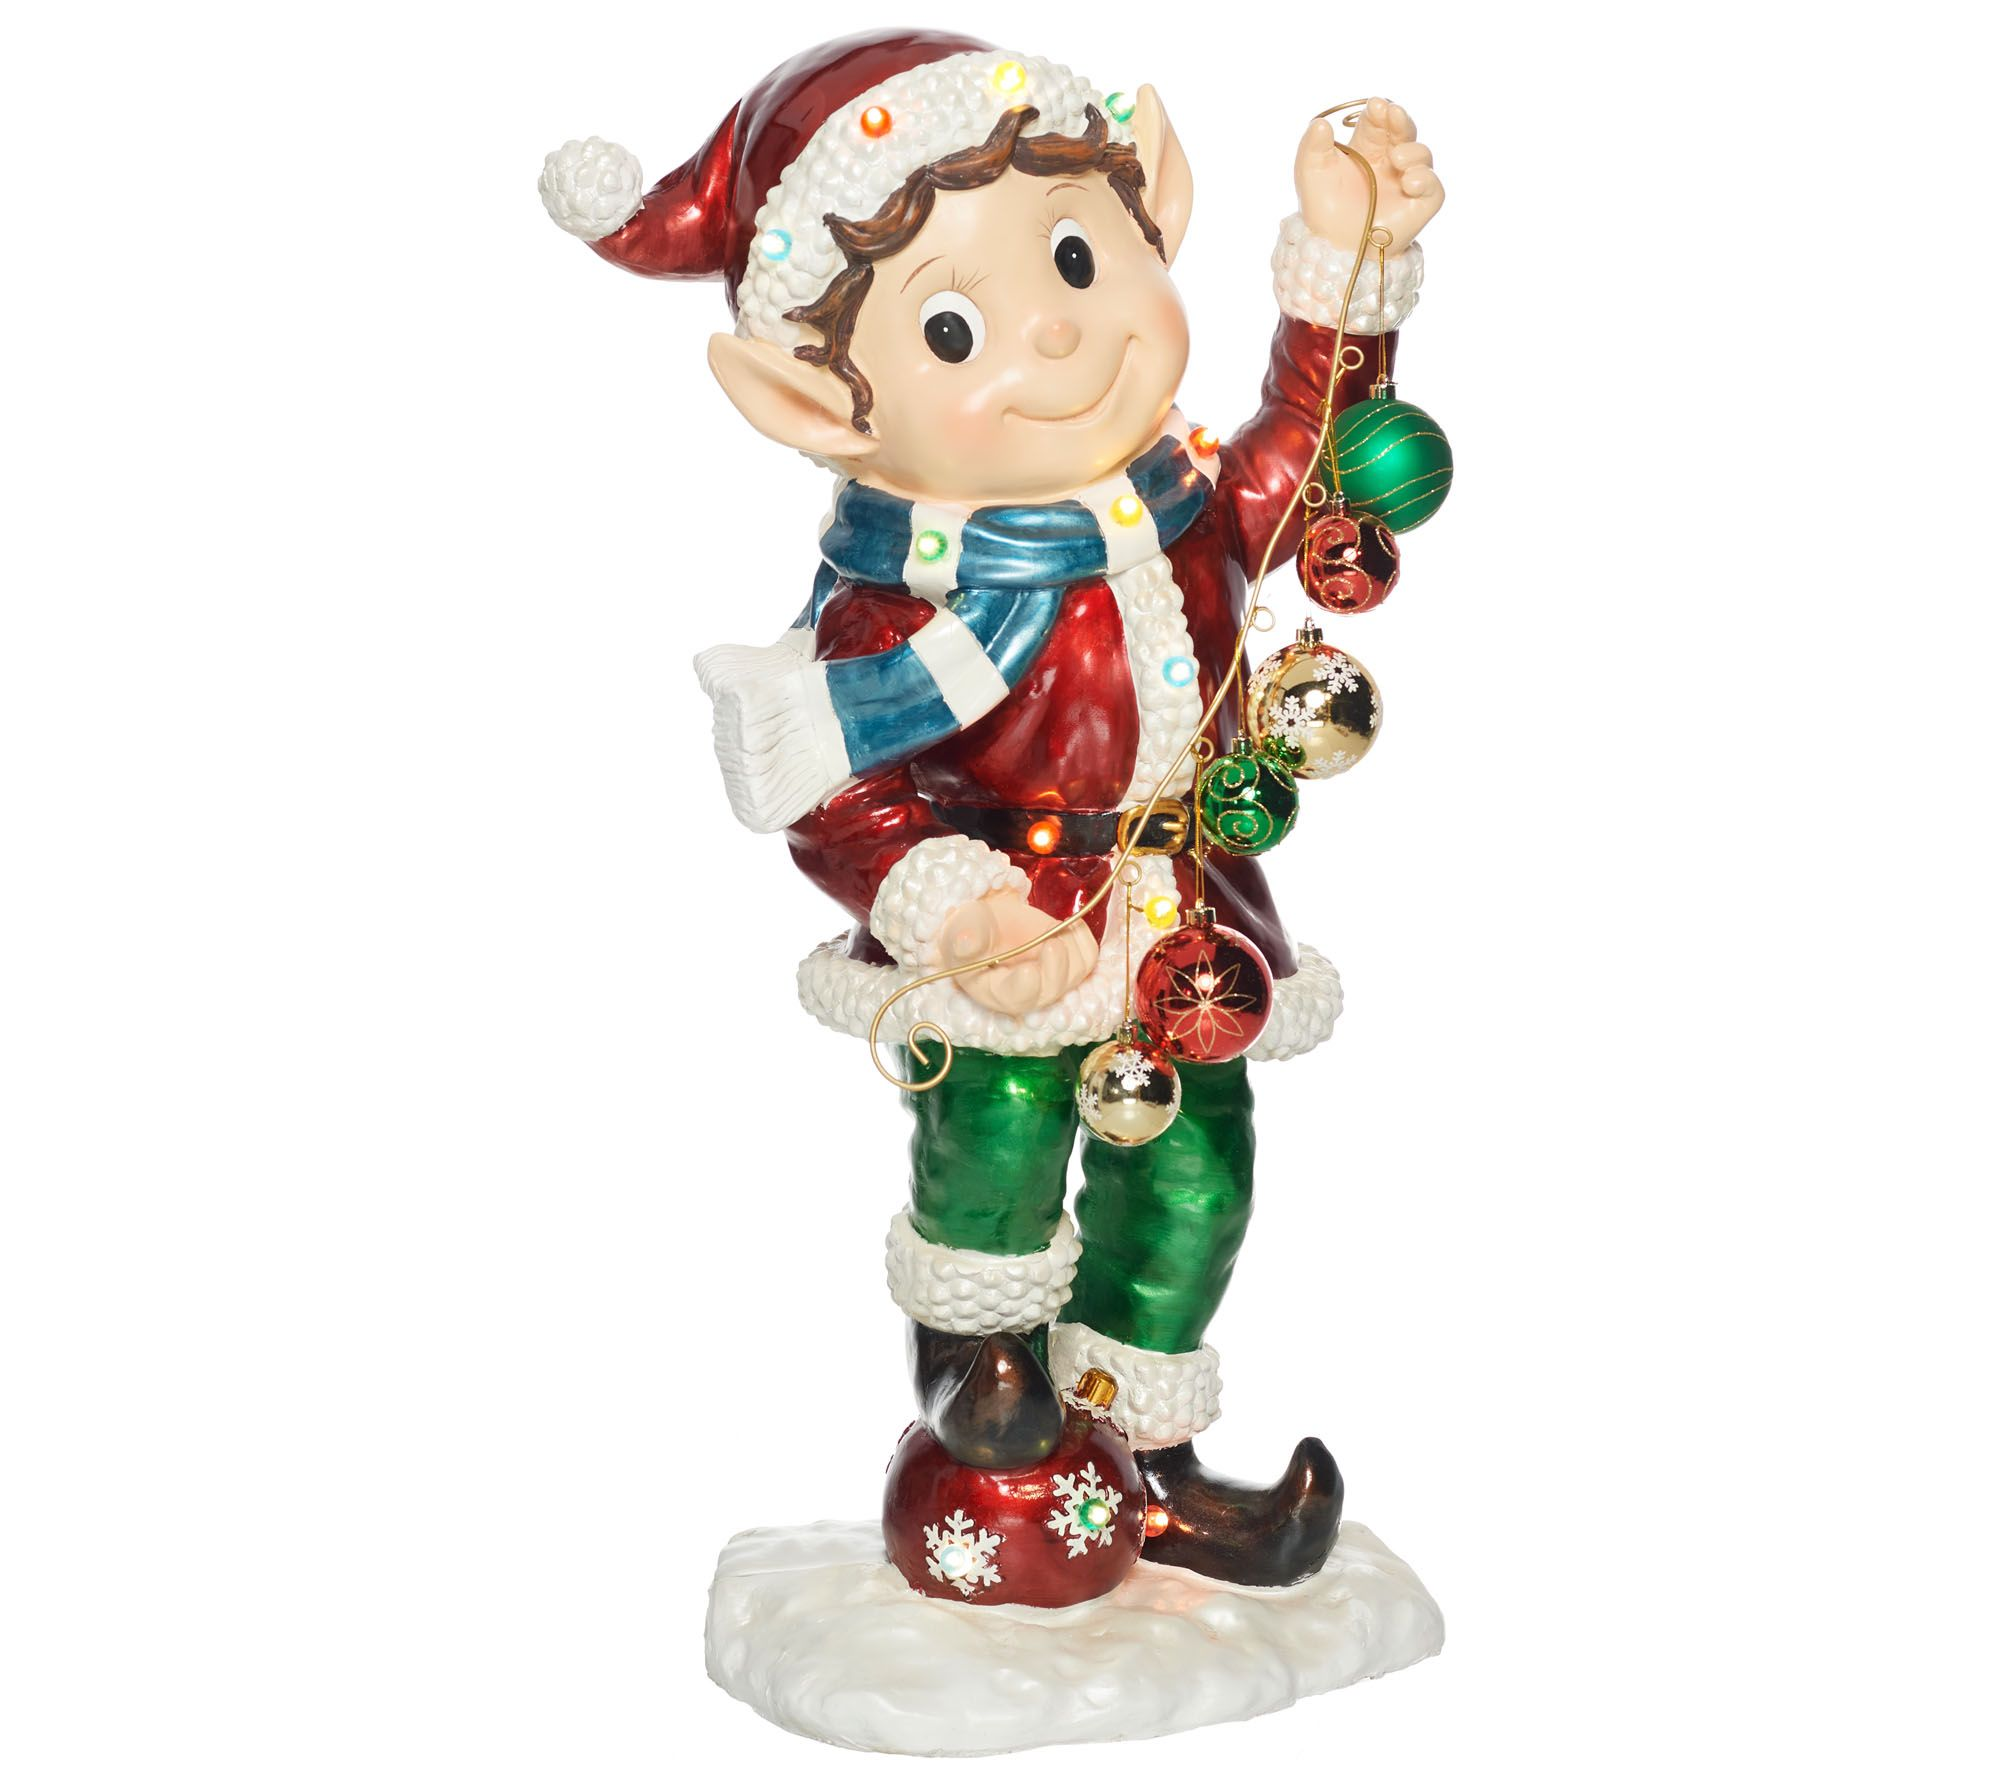 kringle express indooroutdoor 36 illuminated holiday elf with timer qvc com - Qvc Outdoor Christmas Decorations